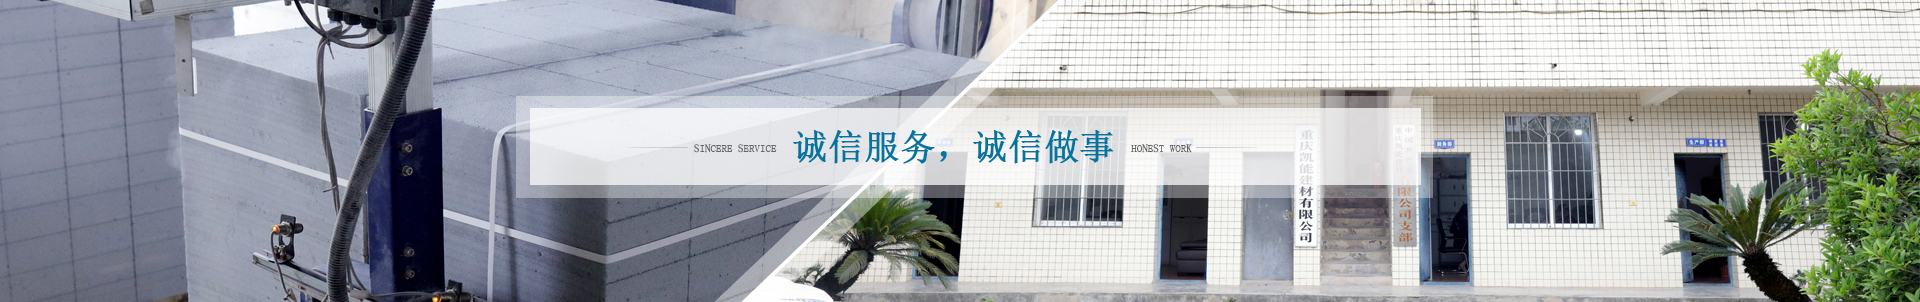 http://www.cqknjc.cn/data/images/slide/20190618100228_984.jpg